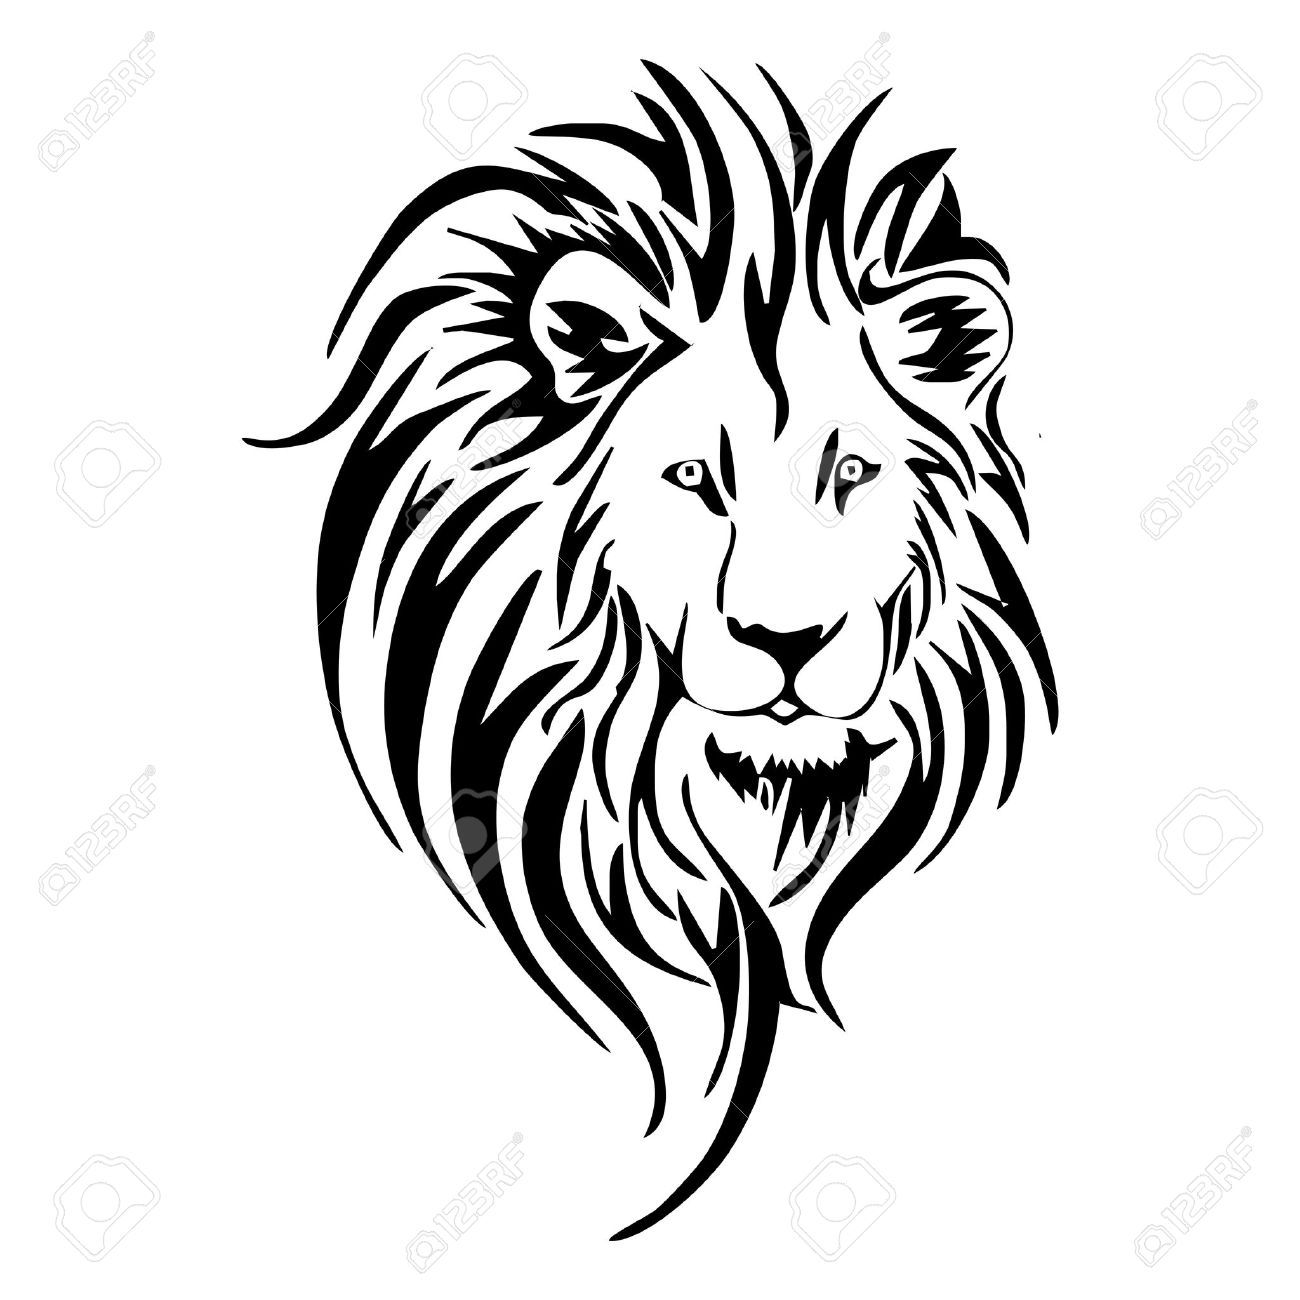 Roaring Lion Clip Art Black And White Lion Head Tattoo Royalty Free Cliparts Vectors And Stock